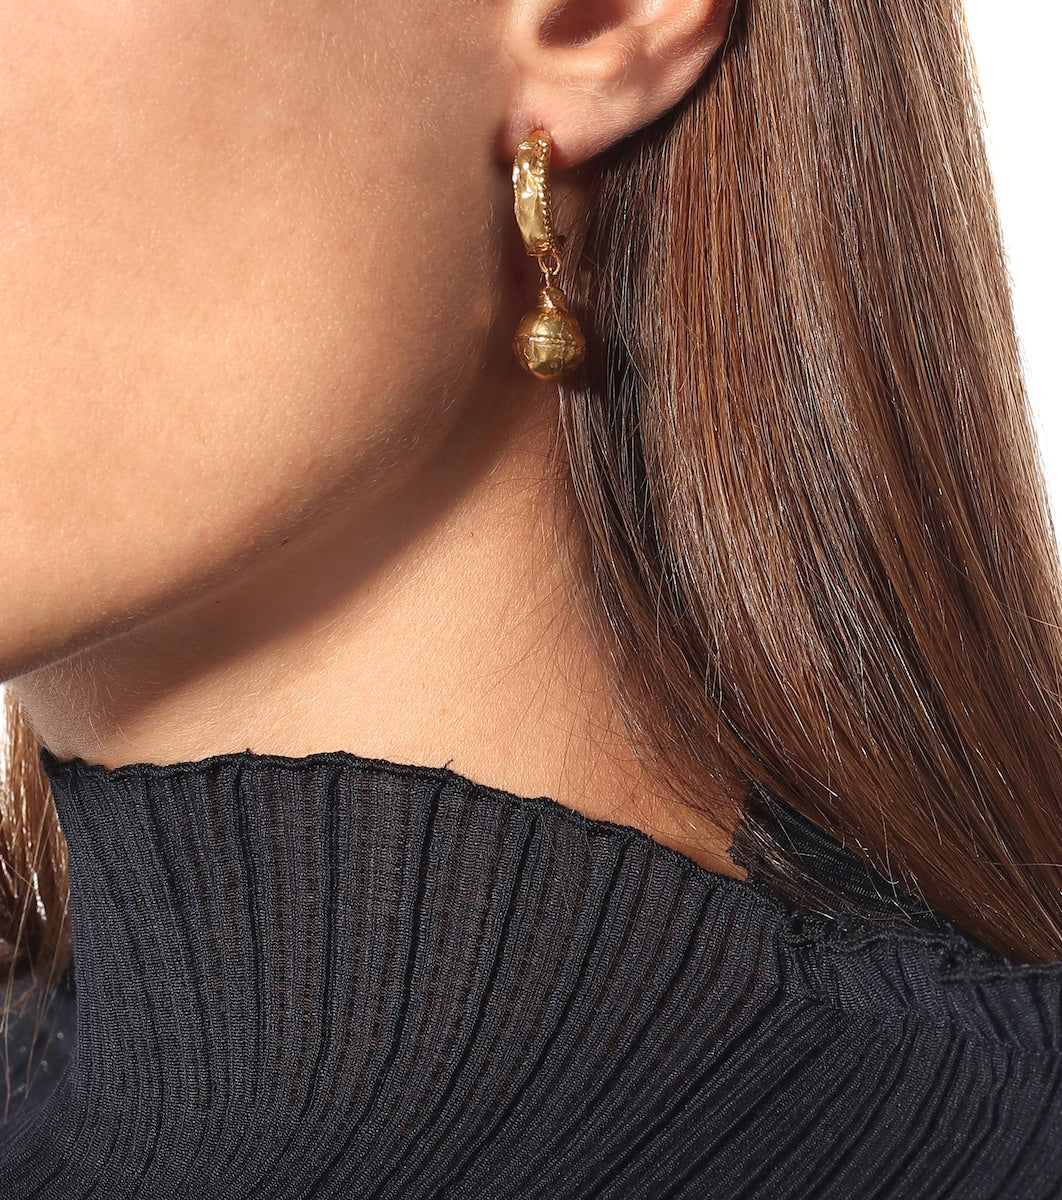 The Fragments On The Shore Earrings